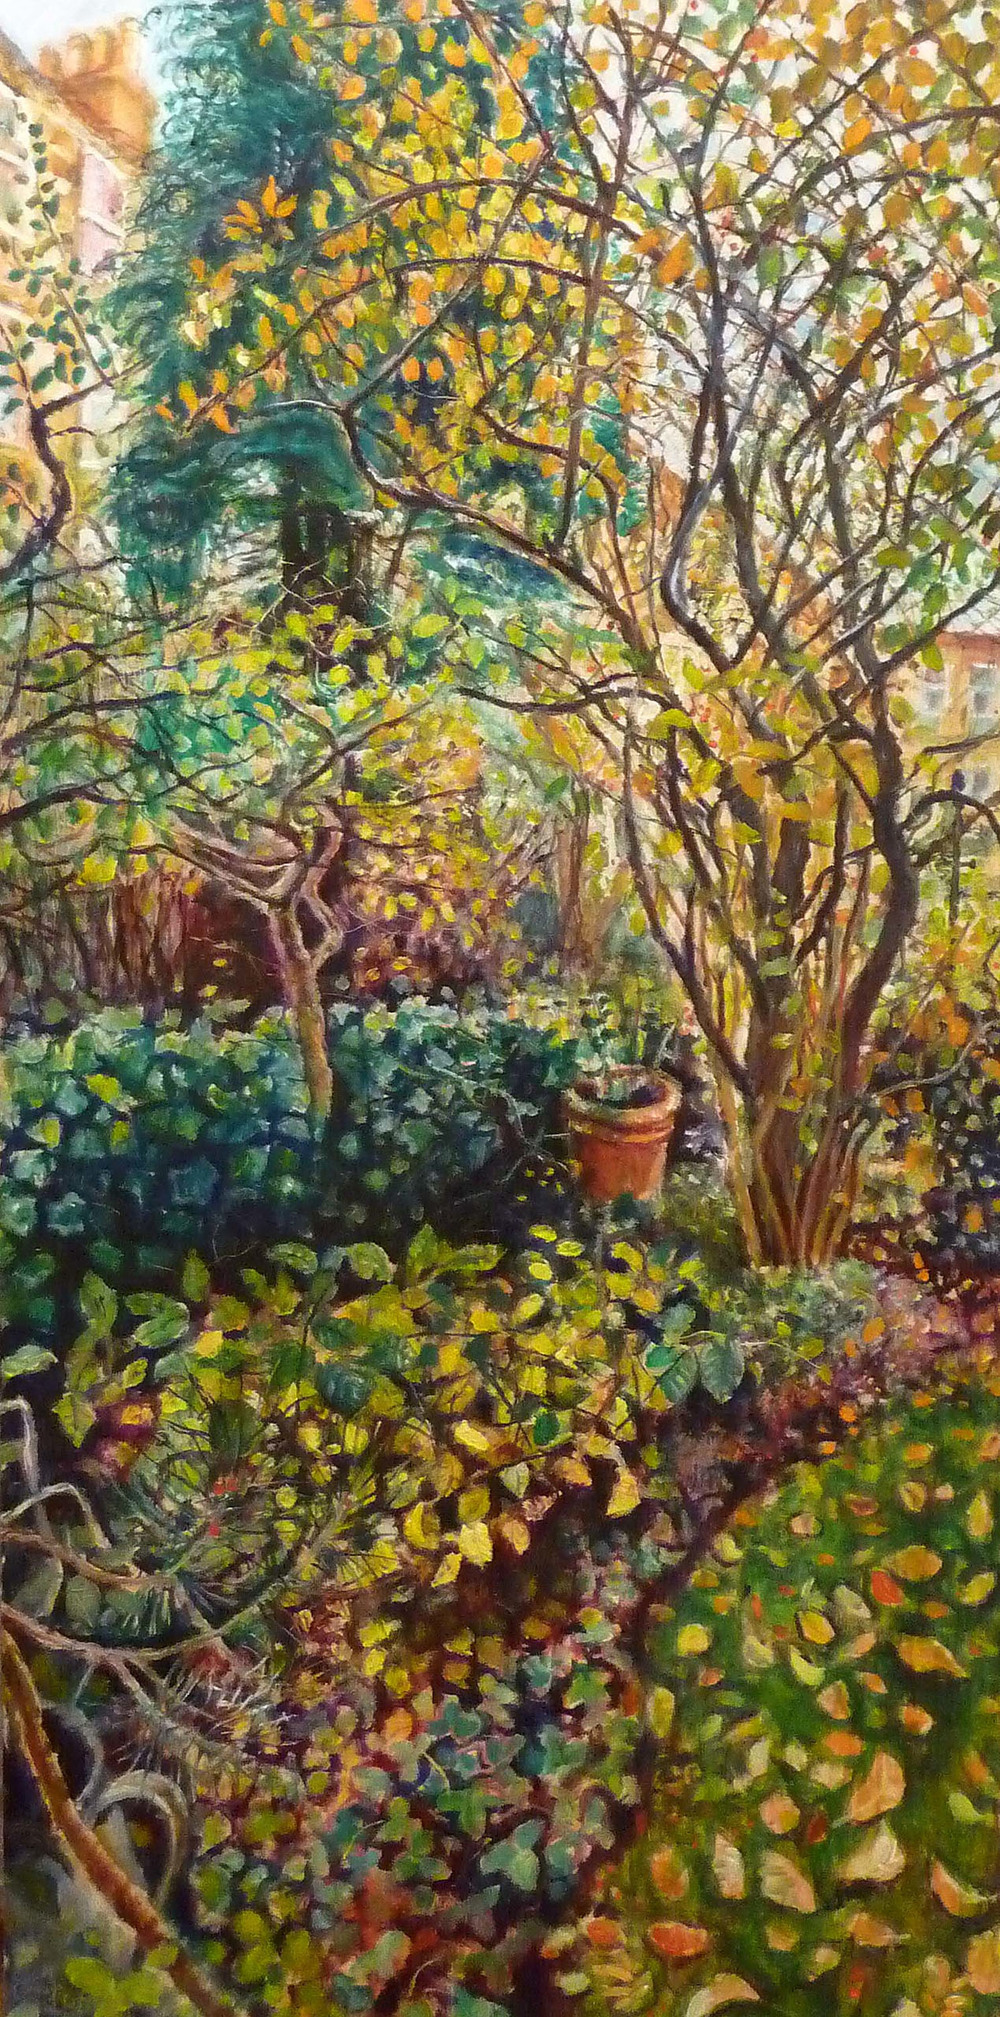 Sarah Longley_-_Back Garden Triptych 3 - Corner of the Garden_oil on board_138 x 70cm.jpg